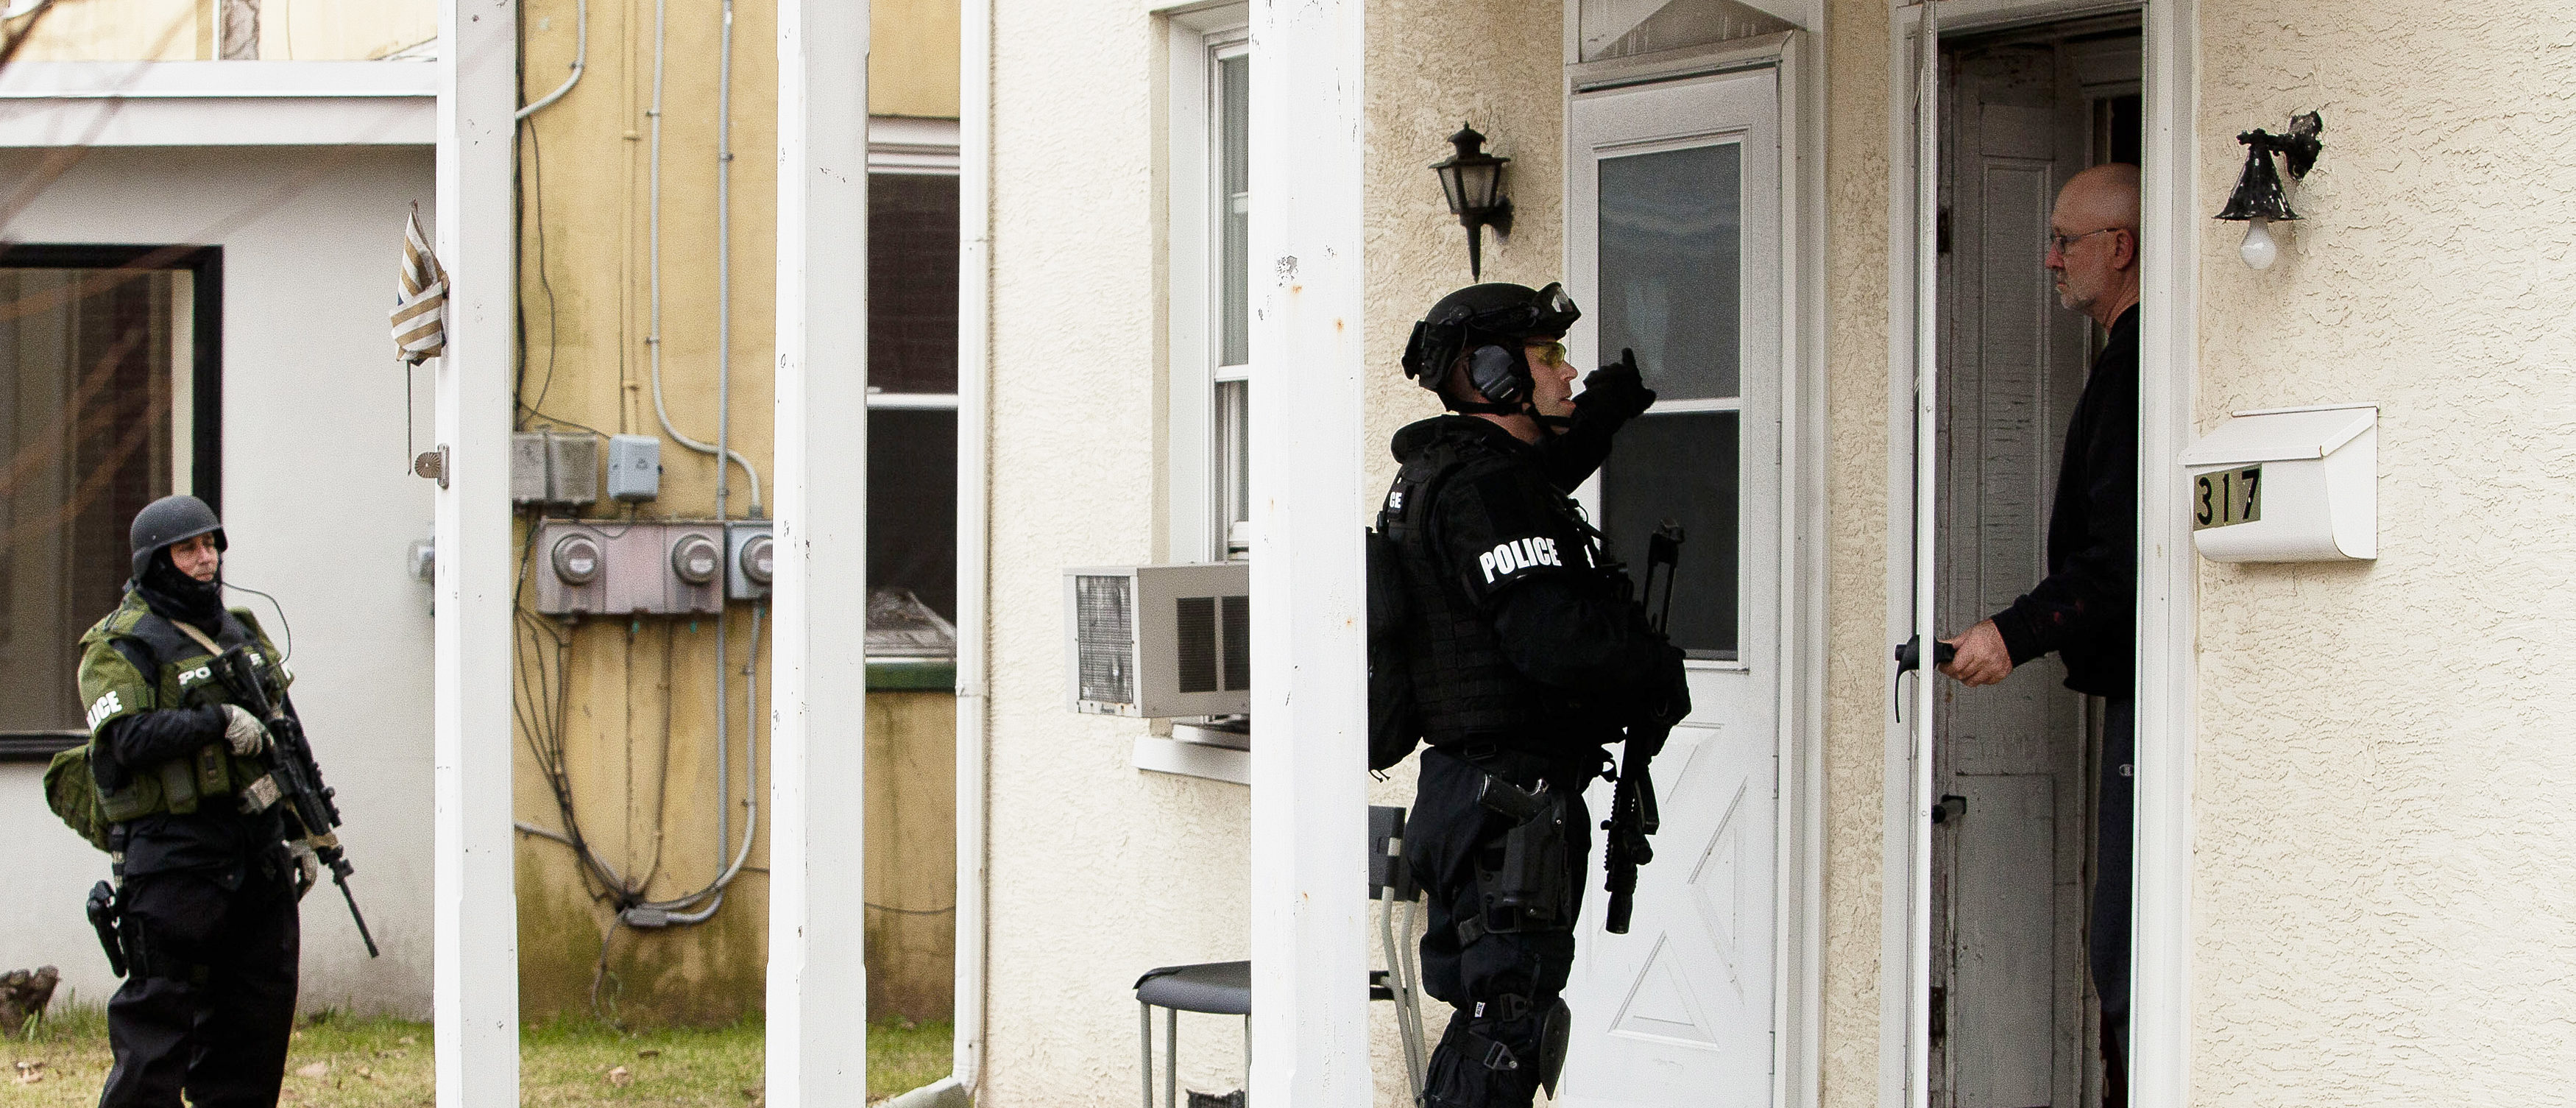 Police SWAT officers search for Bradley William Stone, 35, an Iraq war veteran suspected of fatally shooting and stabbing six family members in Pennsburg, Pennsylvania December 16, 2014. The search for Stone was focused around his hometown of Pennsburg, about 50 miles (80 km) northwest of Philadelphia, where residents were advised to stay inside with their doors locked, Montgomery County District Attorney Risa Vetri Ferman told a news conference.  REUTERS/Brad Larrison (UNITED STATES - Tags: CRIME LAW MILITARY TPX IMAGES OF THE DAY) - TM3EACG125B01